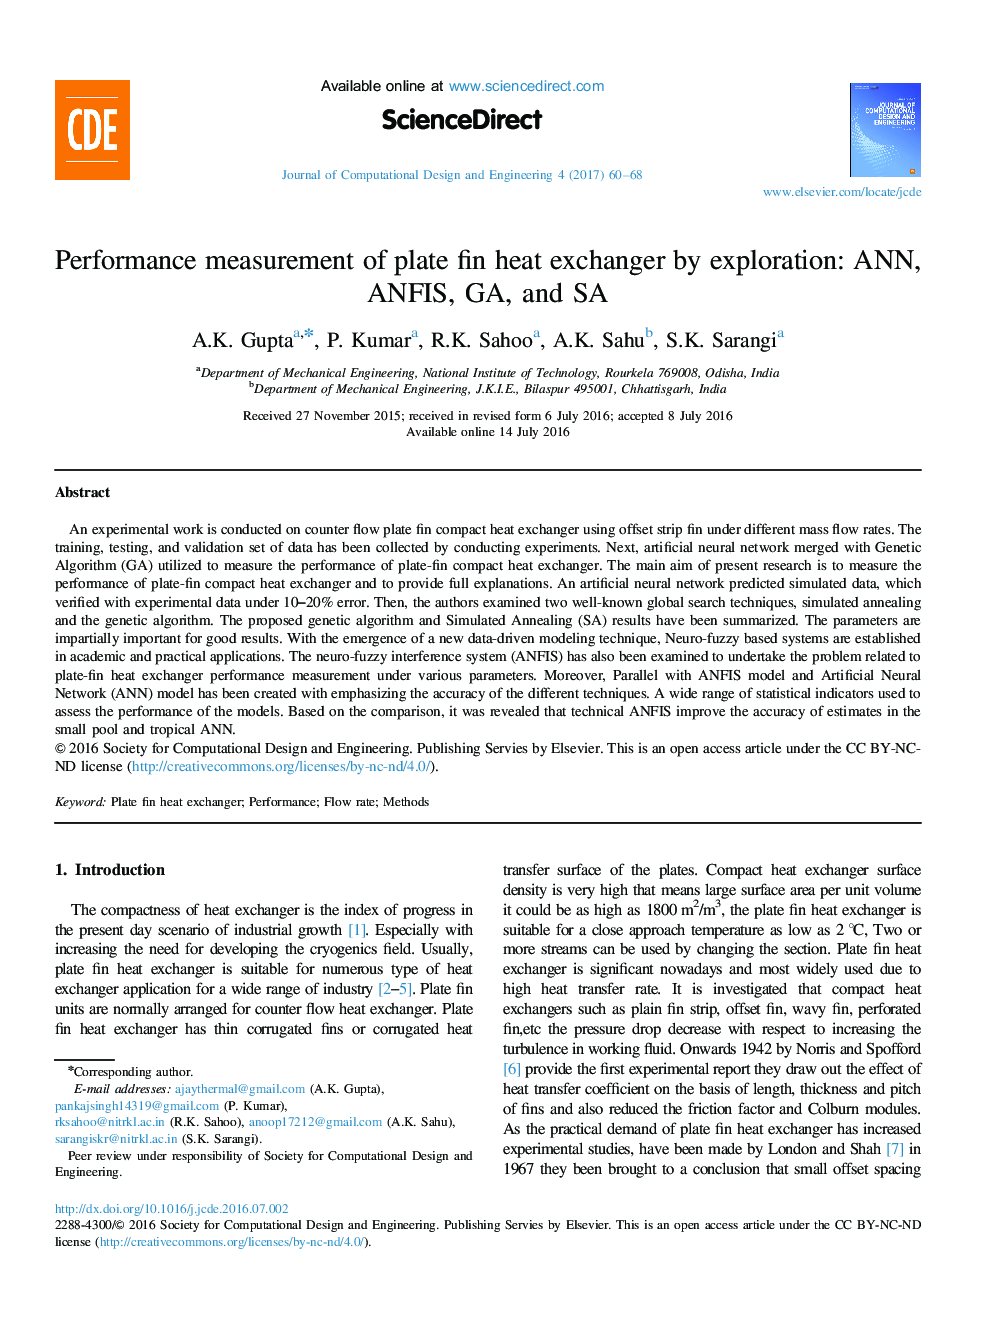 Performance measurement of plate fin heat exchanger by exploration: ANN, ANFIS, GA, and SA